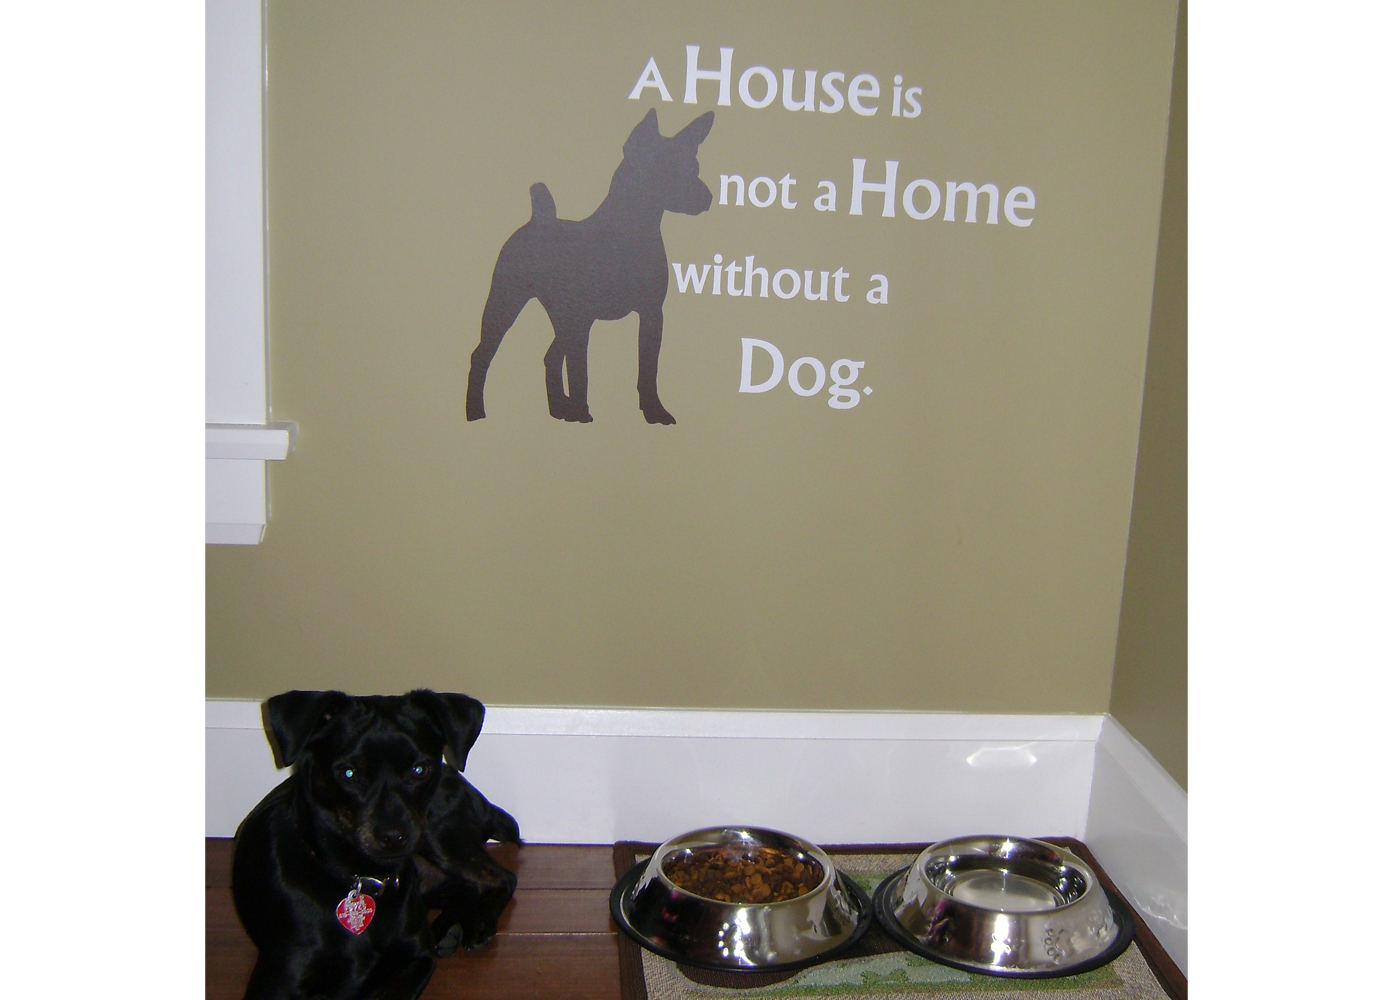 dog-vinyl-wall-decal-stickers-for-home-decor.jpg